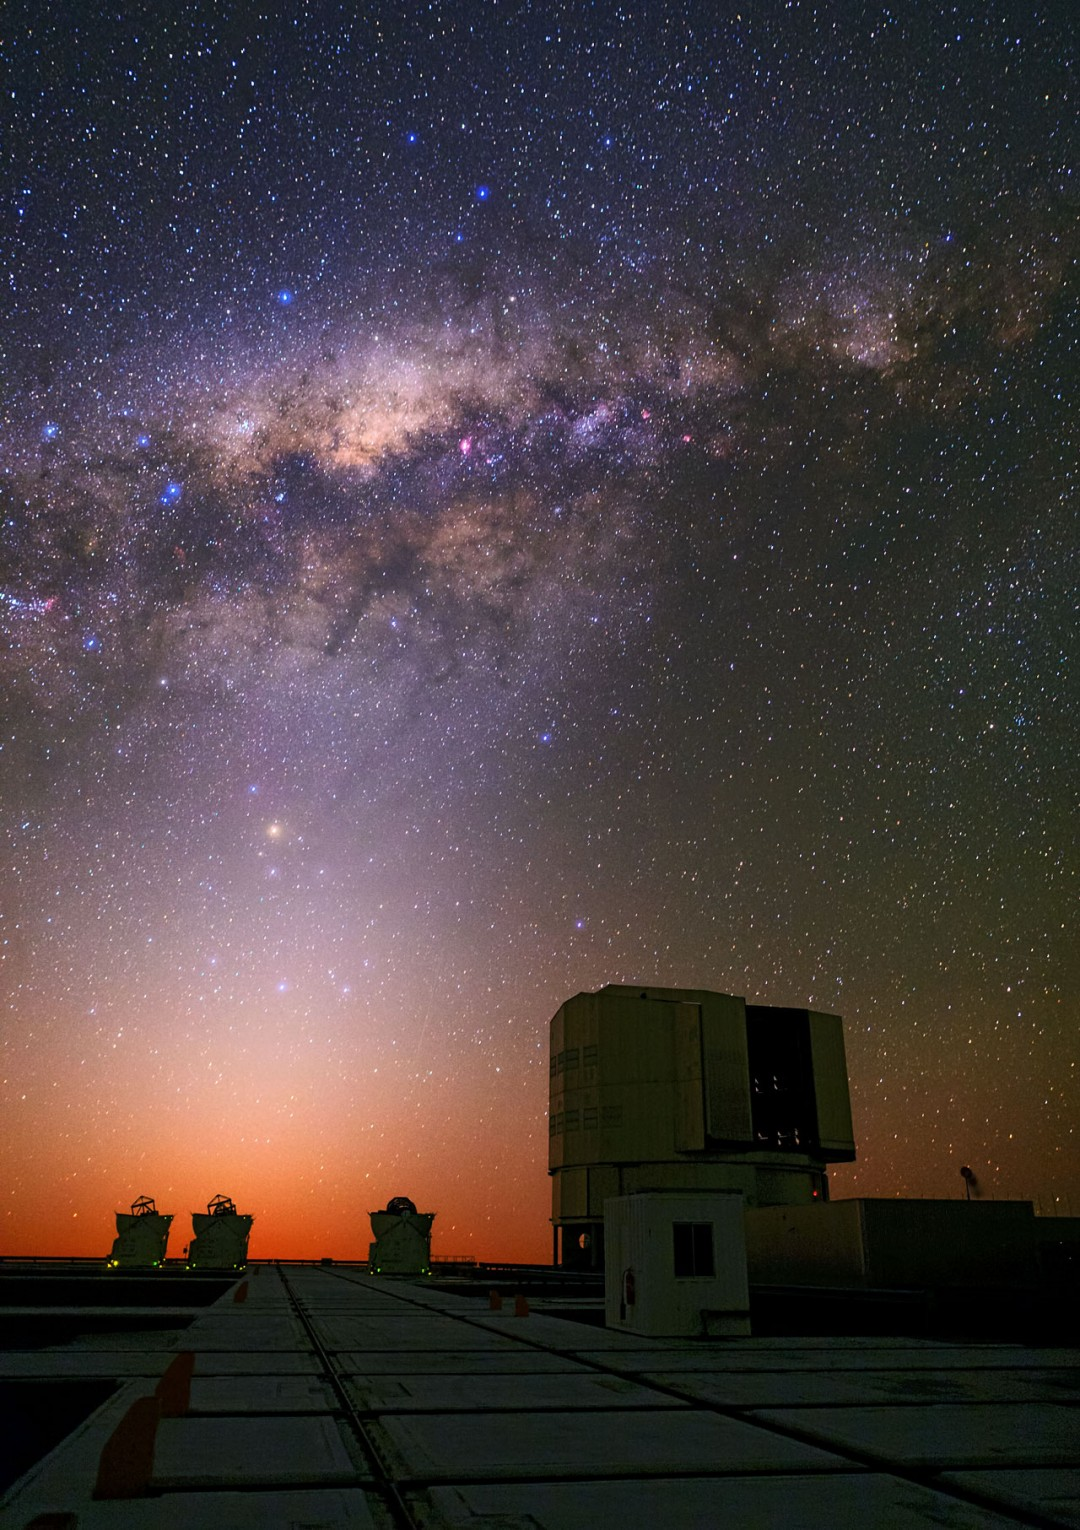 http://www.eso.org/public/images/potw1516a/